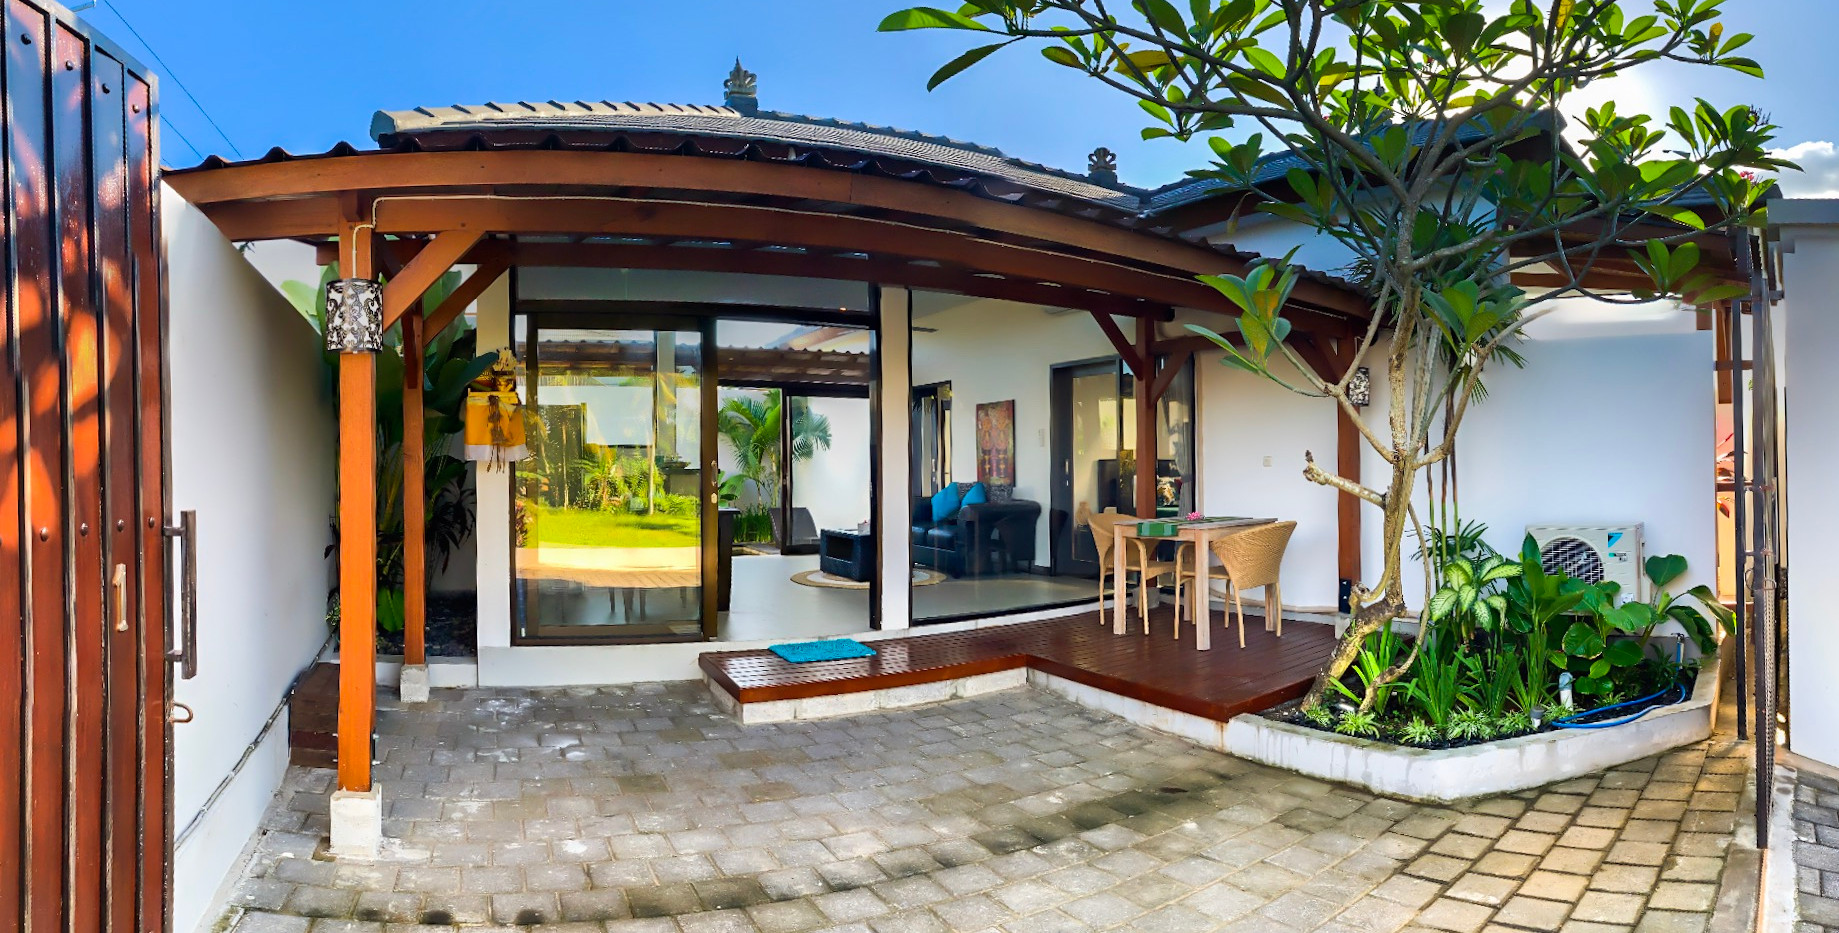 Villas for rent near Monkey Forest